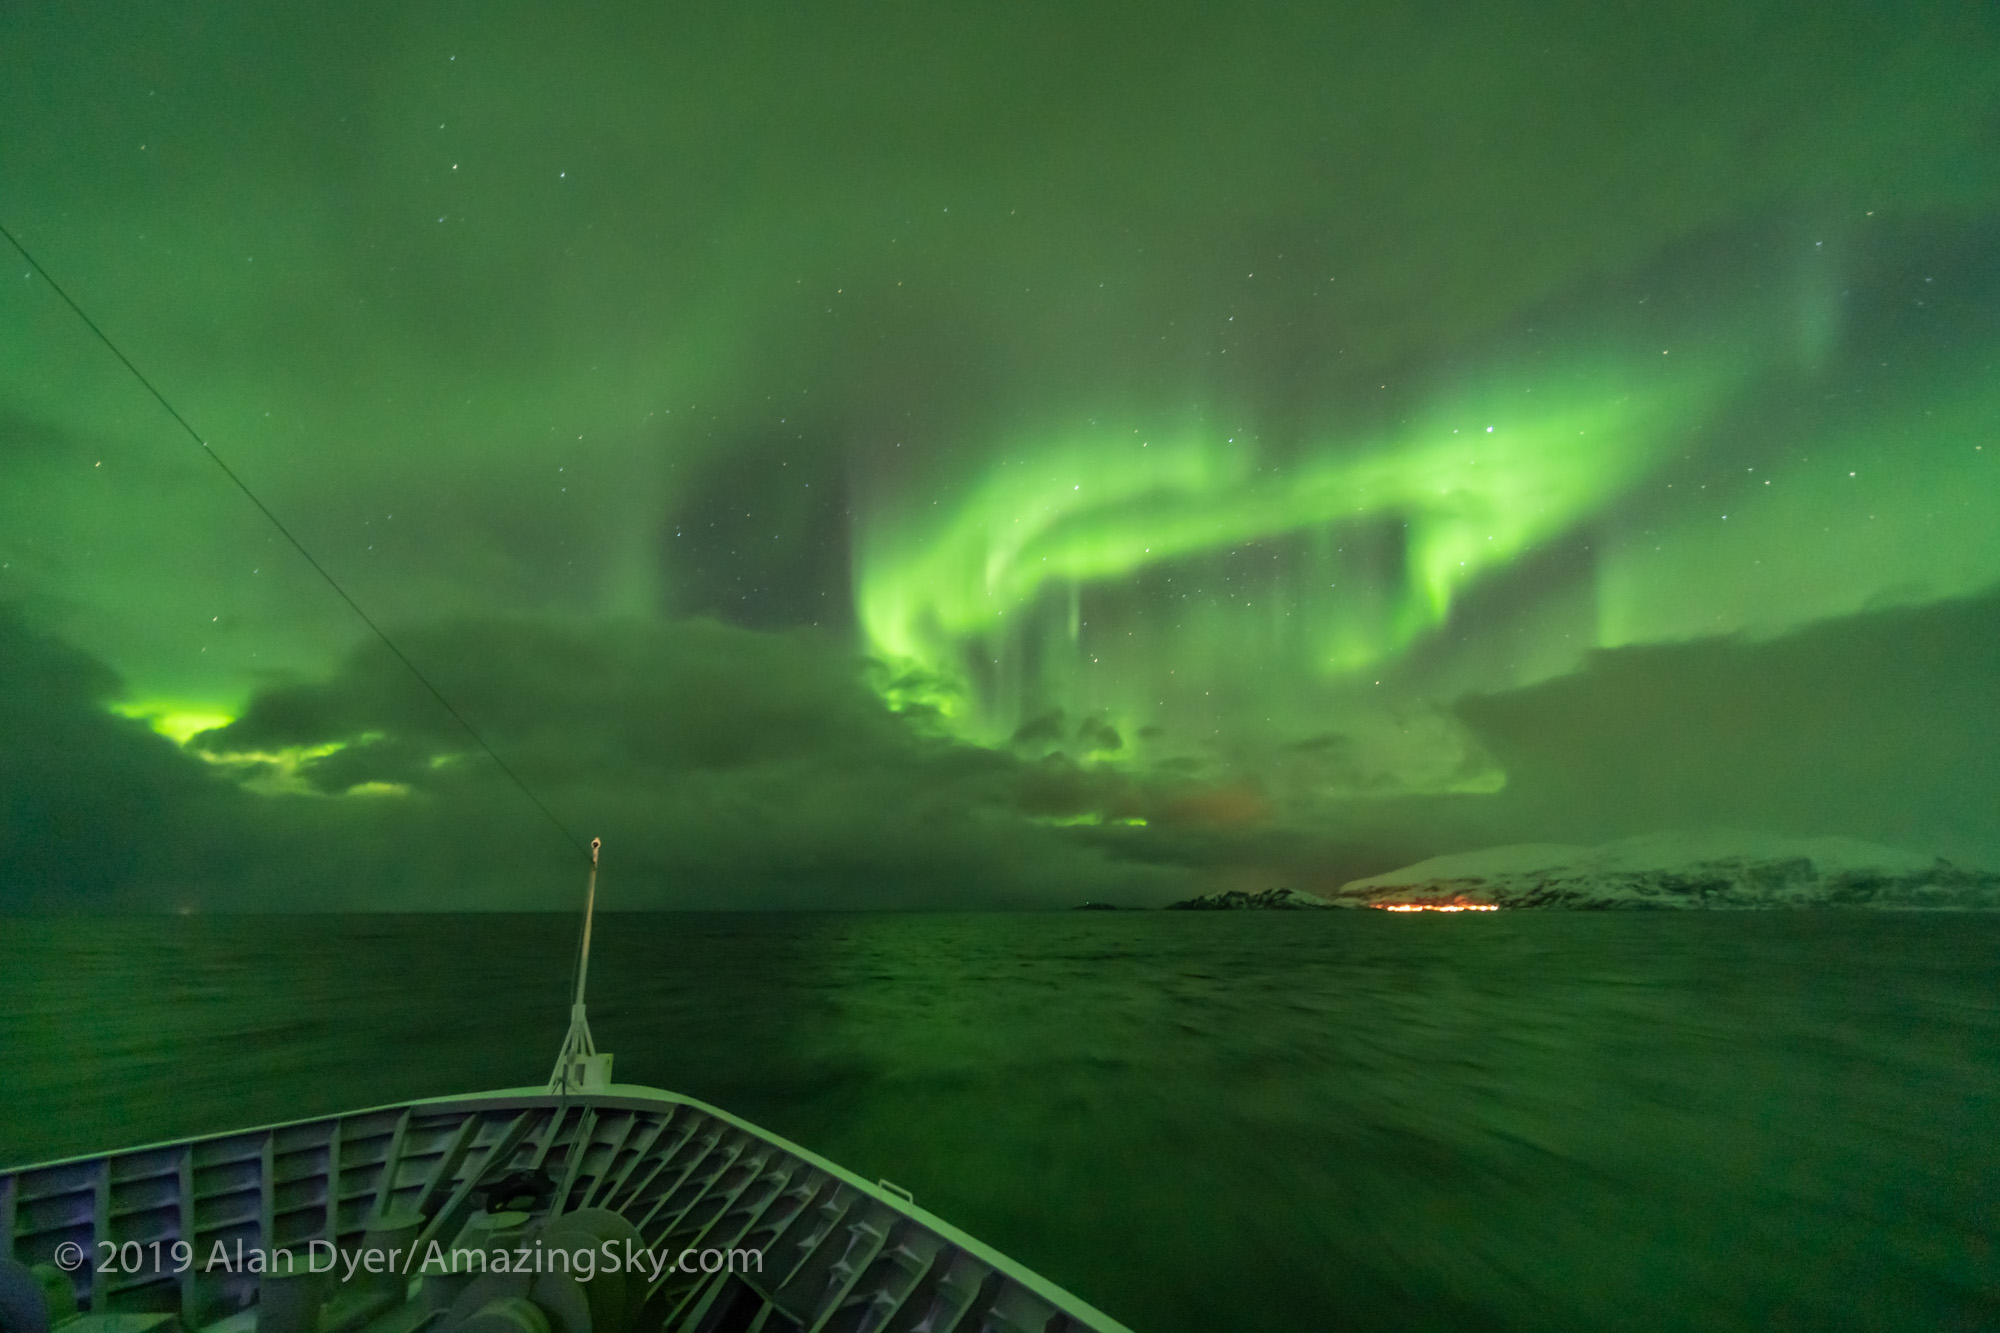 Aurora over the Norwegian Sea #2 (Feb 27, 2019)